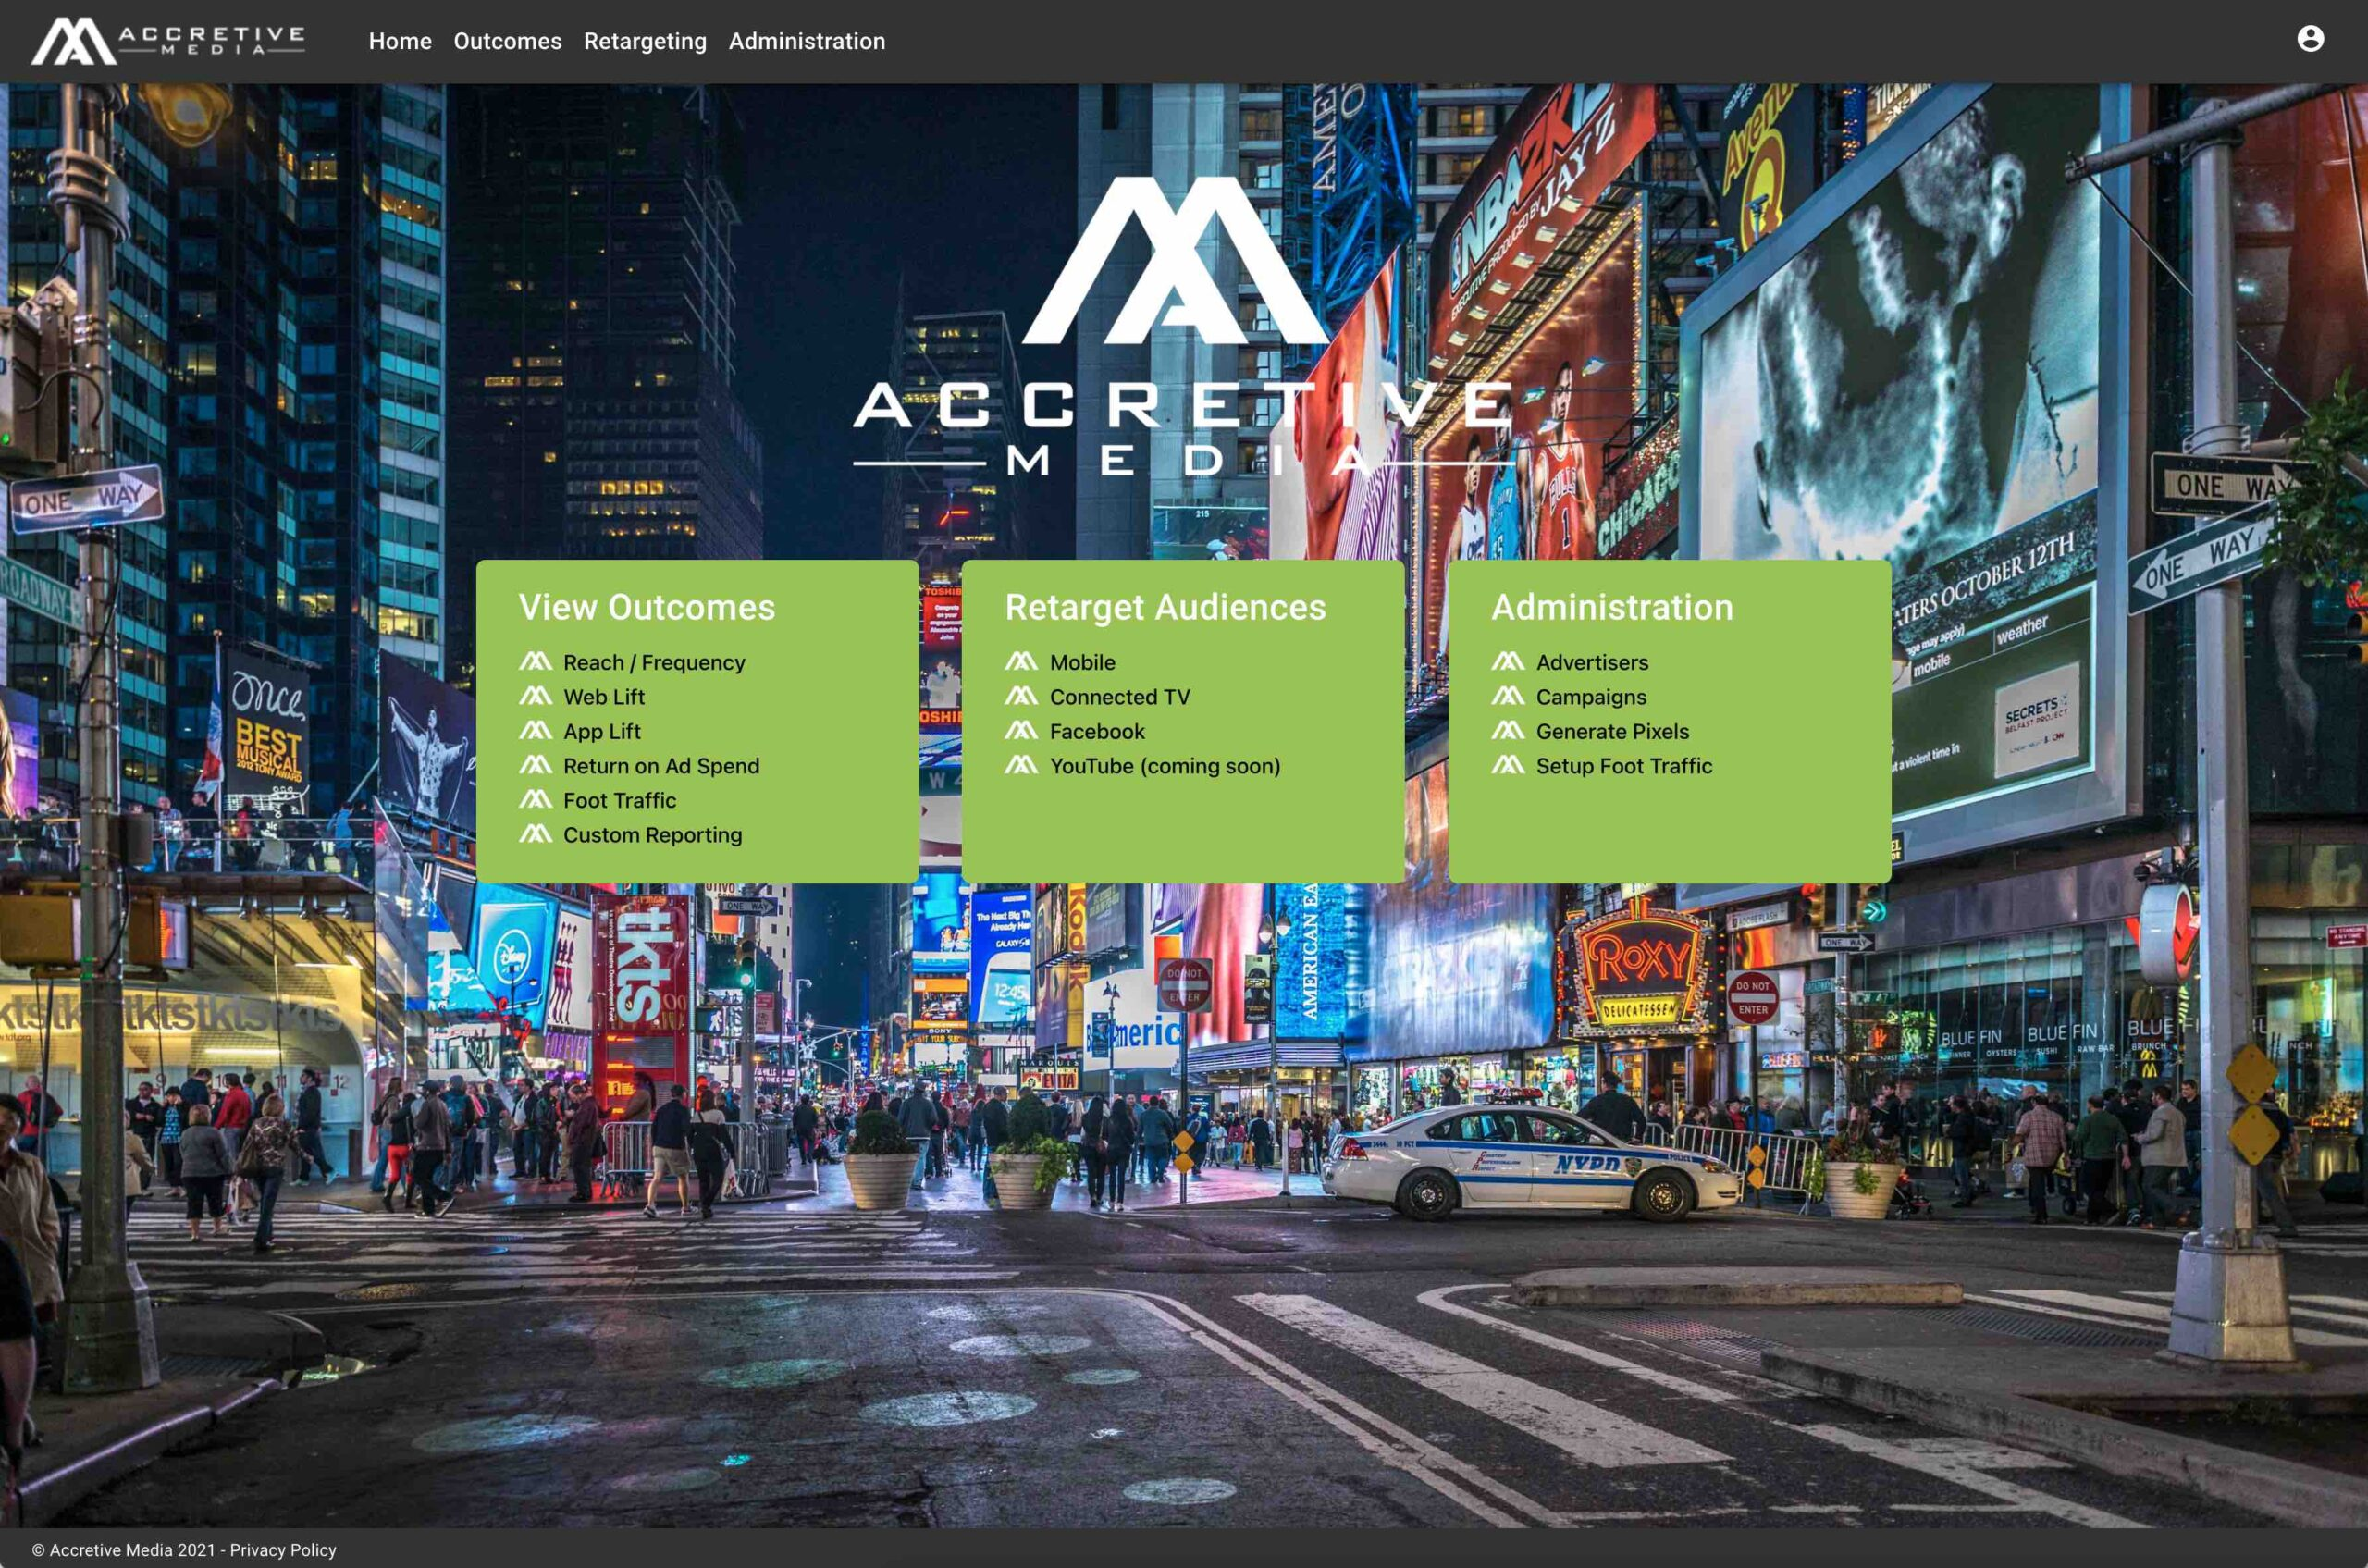 Accretive Media launches Accretive Outcomes™ automated measurement purpose-built for the out-of-home channel